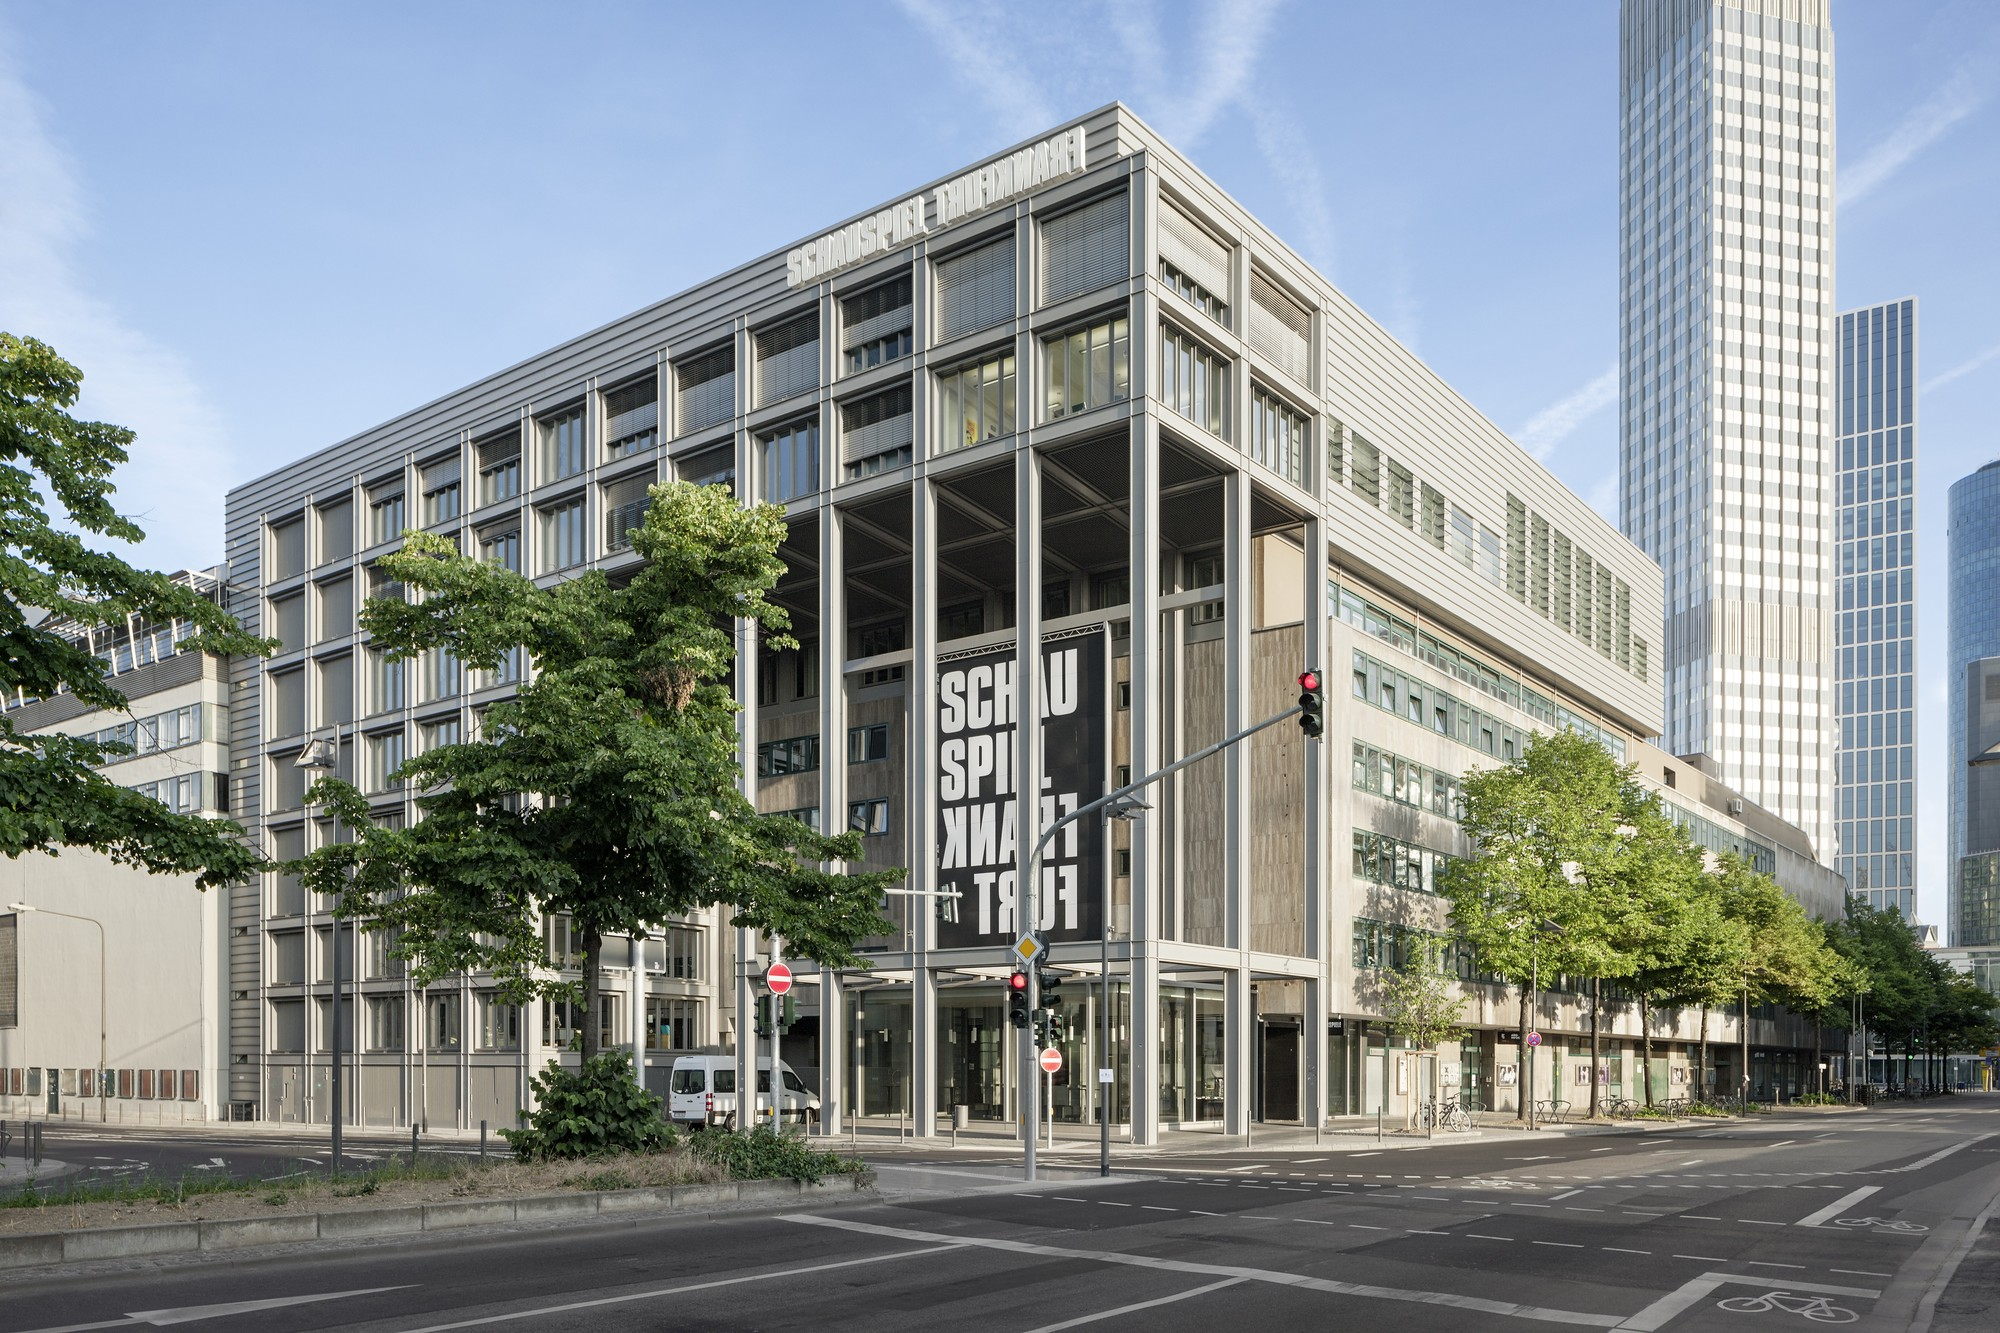 St Dtische B Hnen Theatre Workshops Gmp Architekten